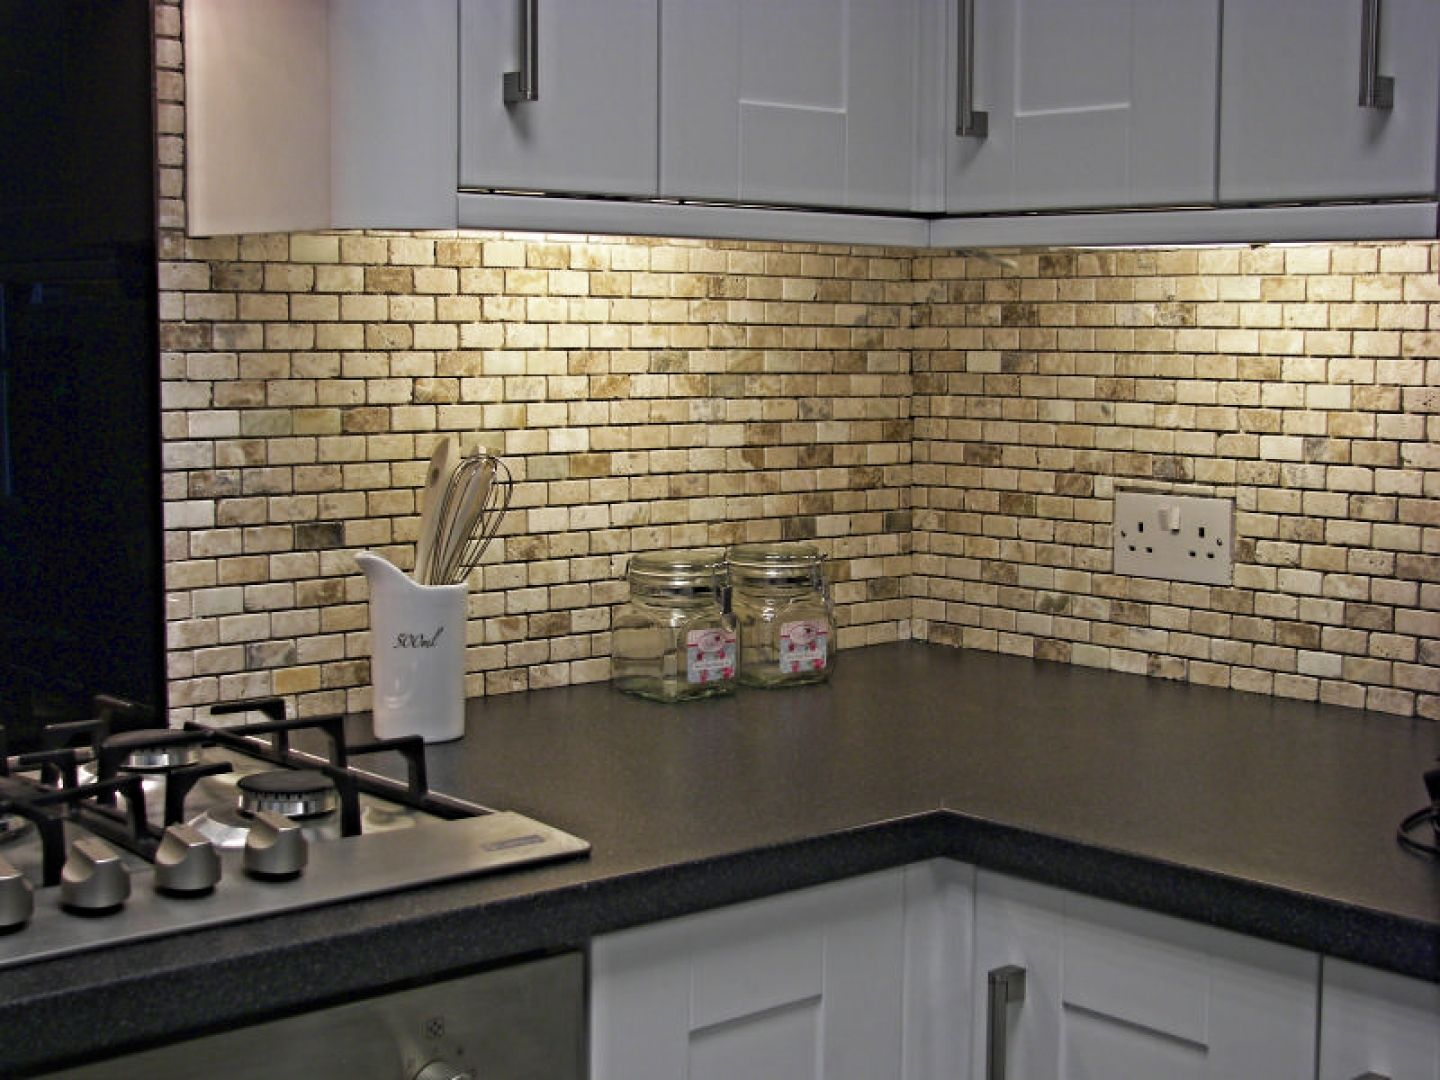 Ceramic Tiles Porcelain Tiles Backsplash With White